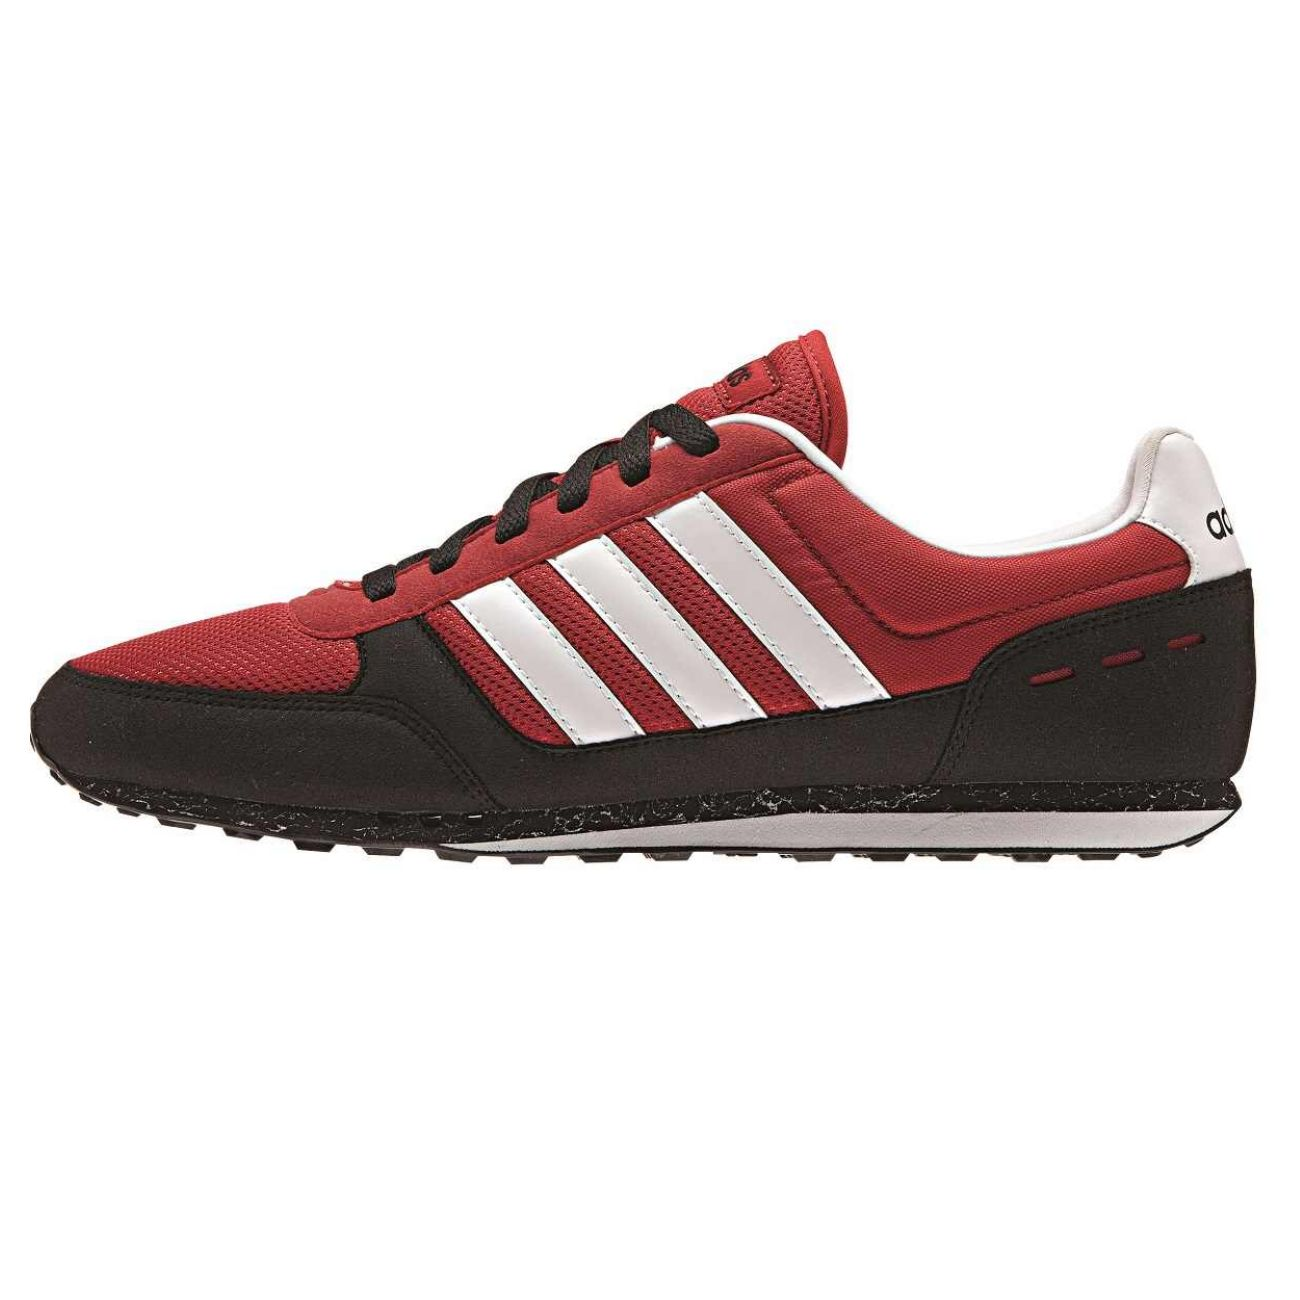 adidas city racer schuhe turnschuhe sneaker herren damen. Black Bedroom Furniture Sets. Home Design Ideas